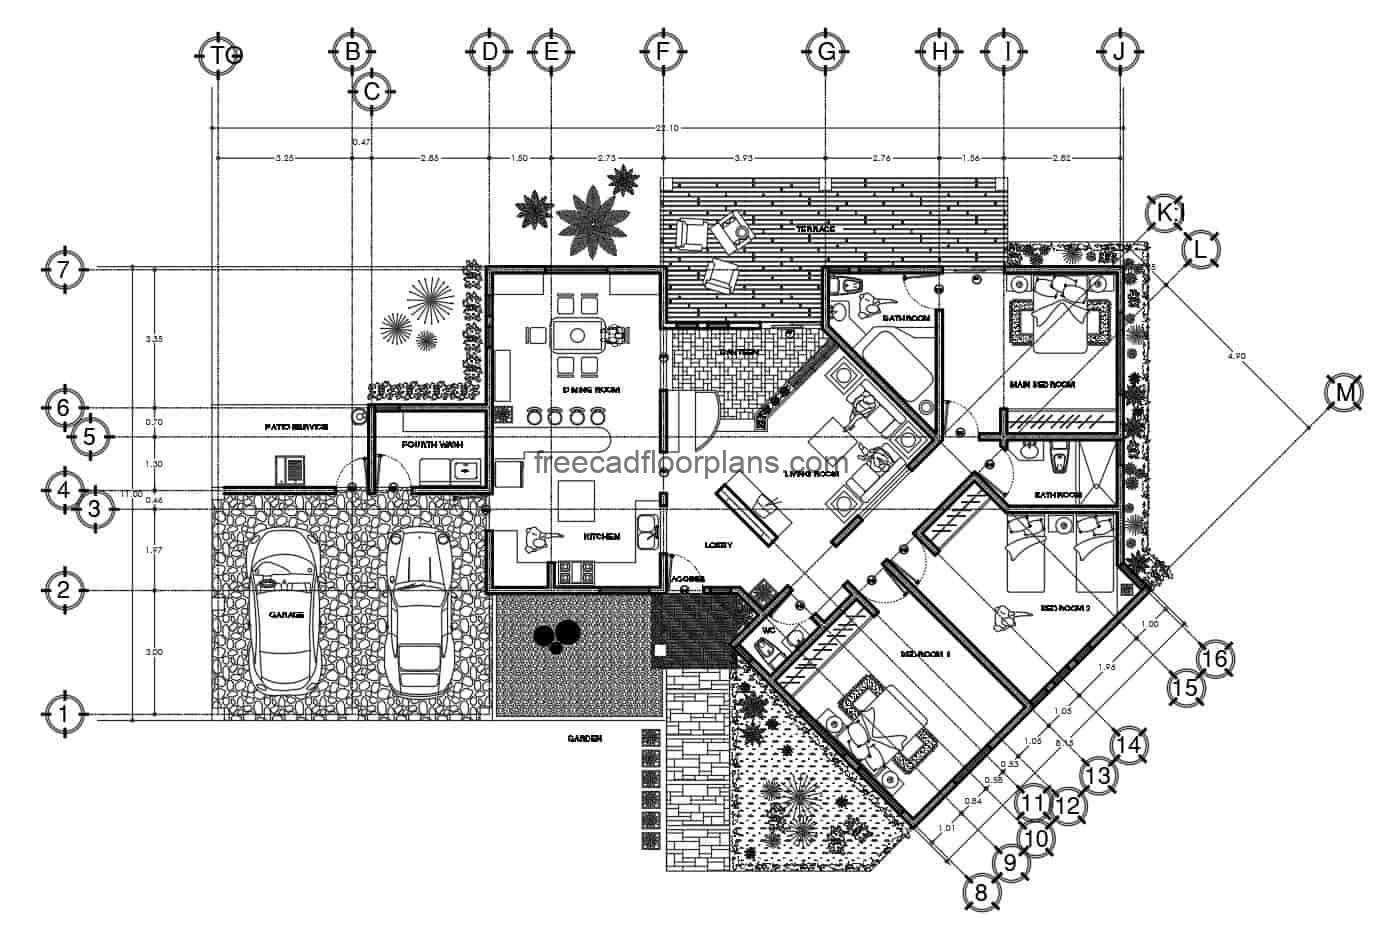 Residence of three rooms, house with irregular shape of a simple level with three rooms, architectural and dimensional plans with facade elevations for free download in Autocad DWG format. Editable furniture blocks in DWG inside the house, editable blueprints.